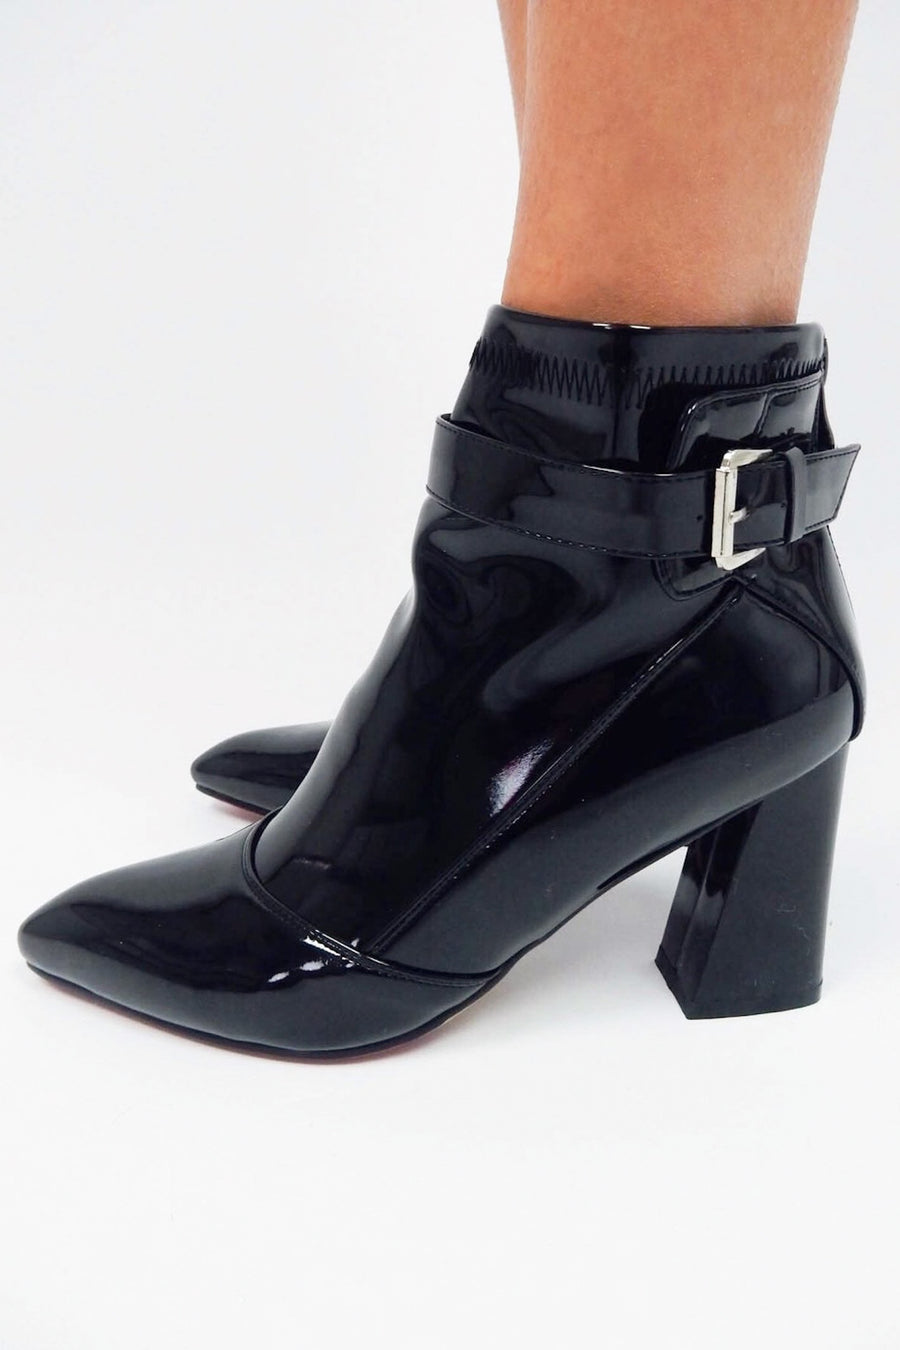 LOVE FOOL BLACK HEEL BOOTS - Halite Clothing